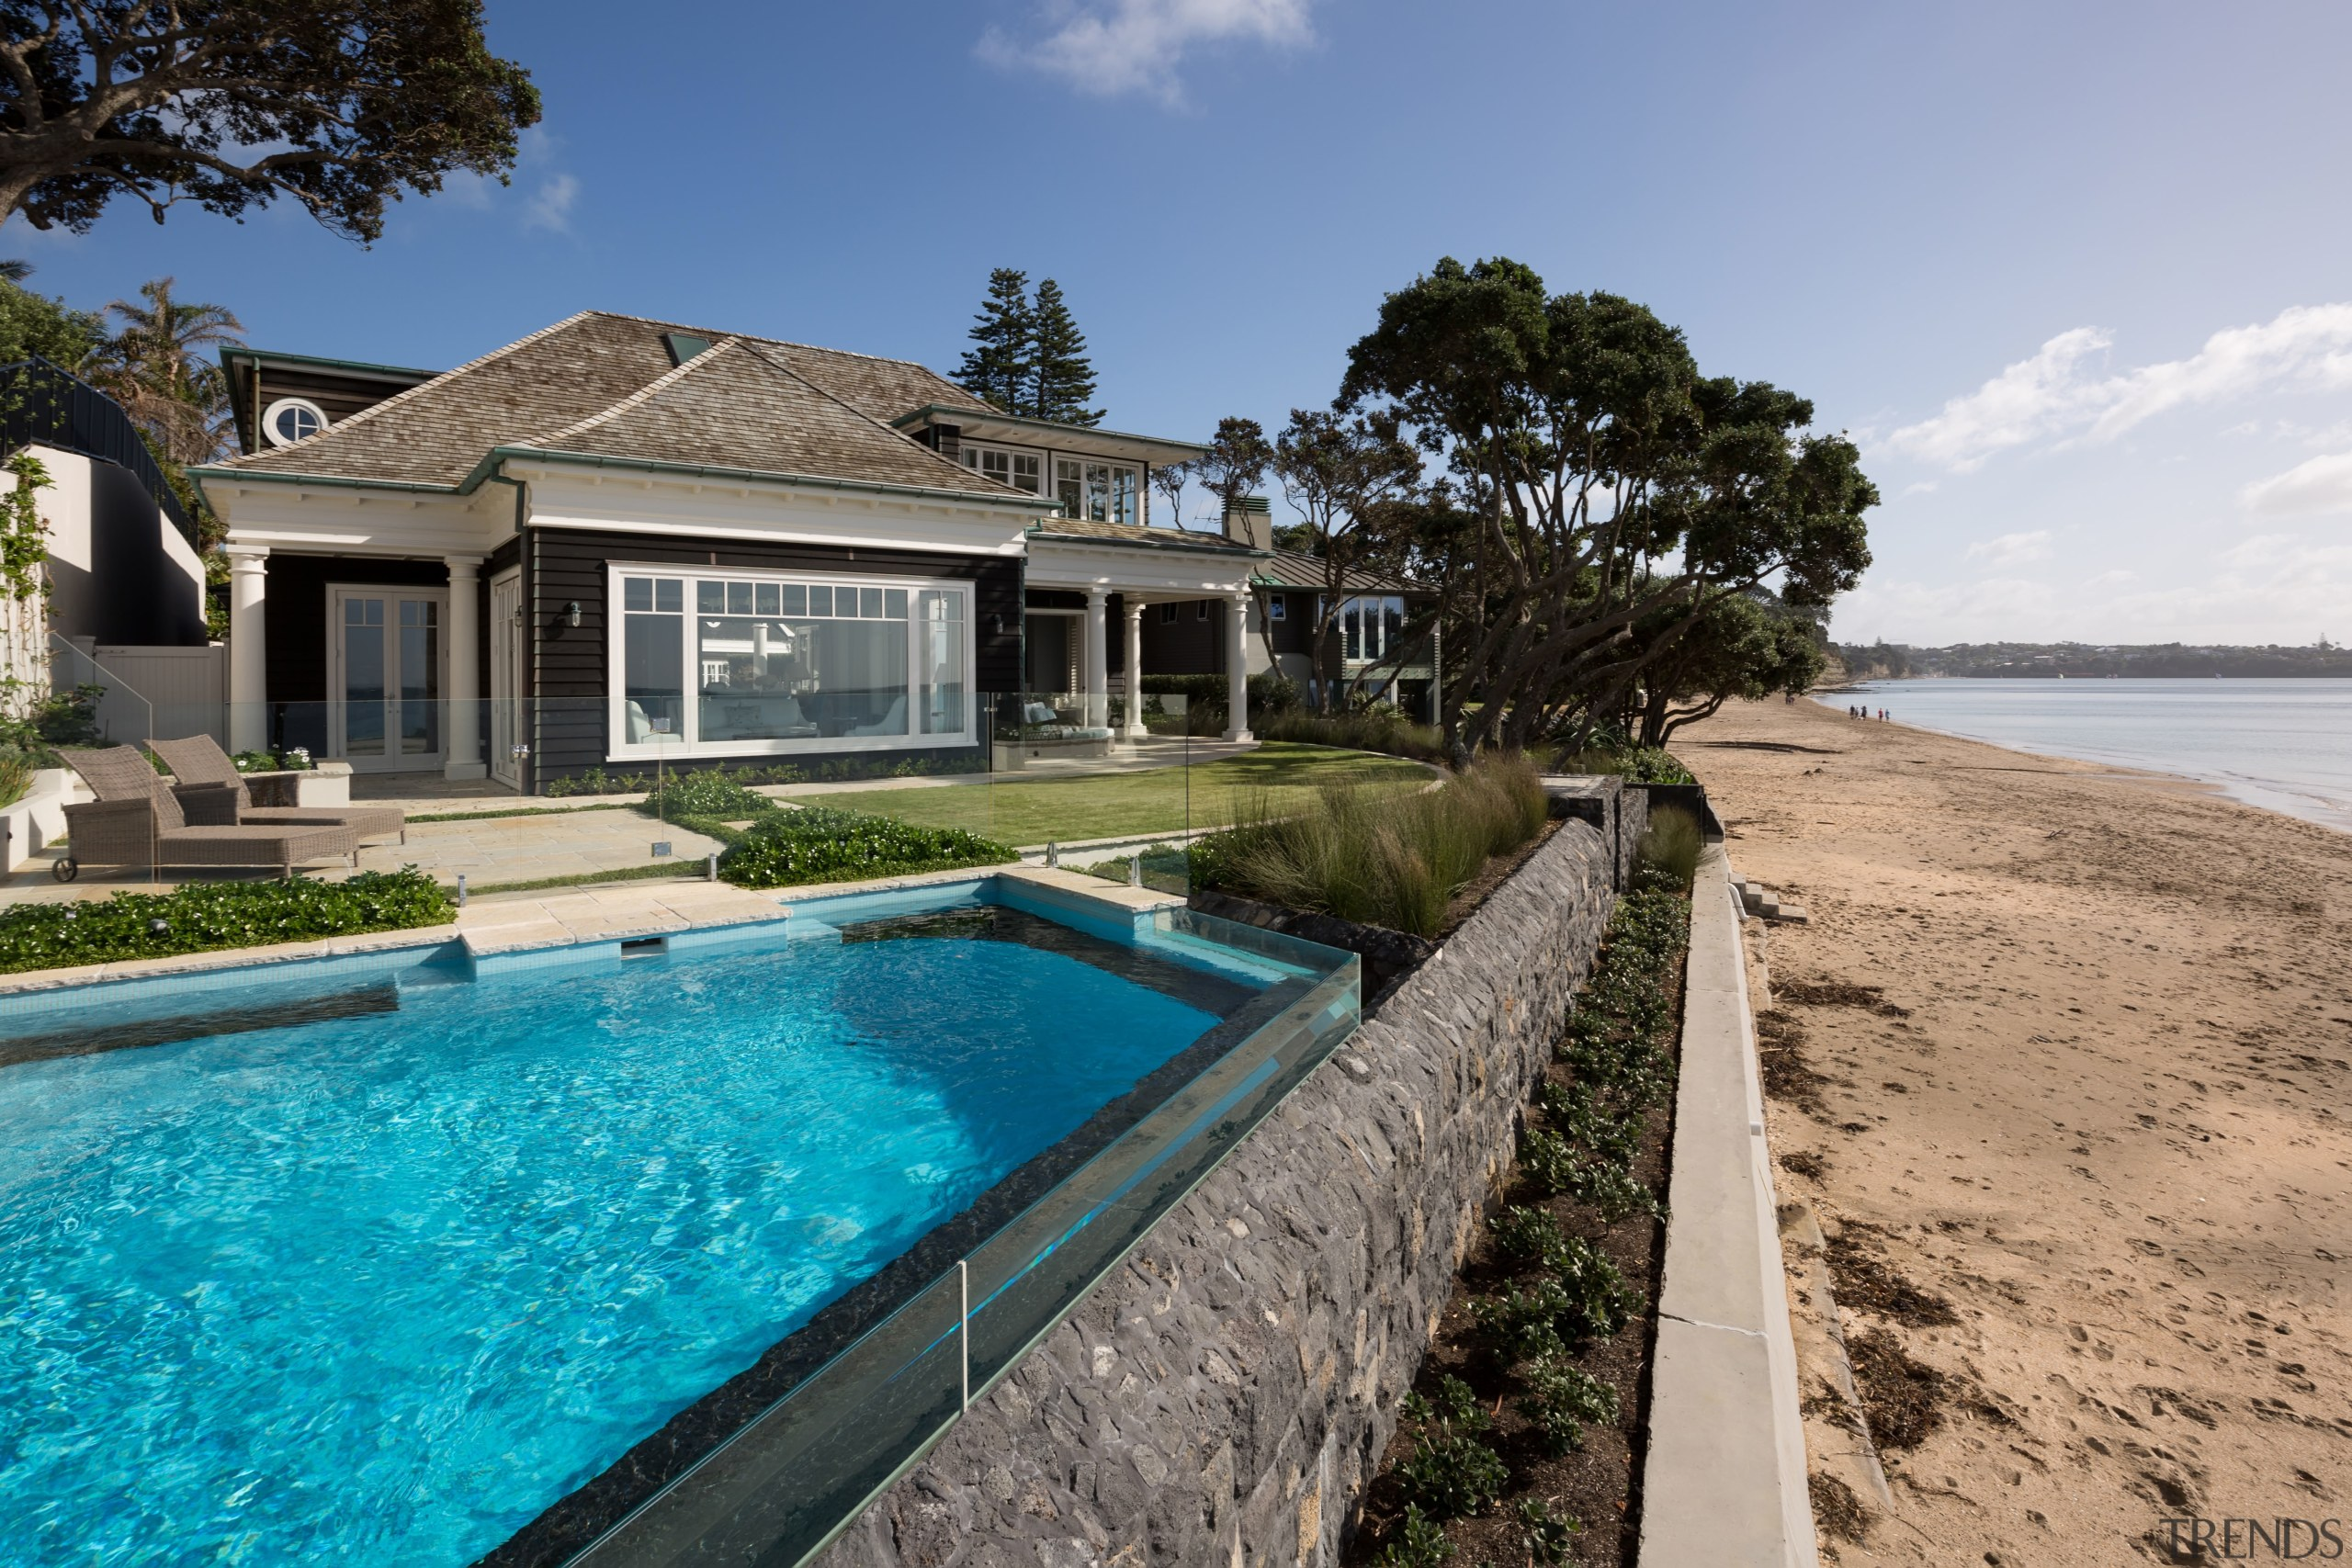 This homes seaward side has two sheltered outdoor cottage, estate, home, house, property, real estate, resort, swimming pool, villa, gray